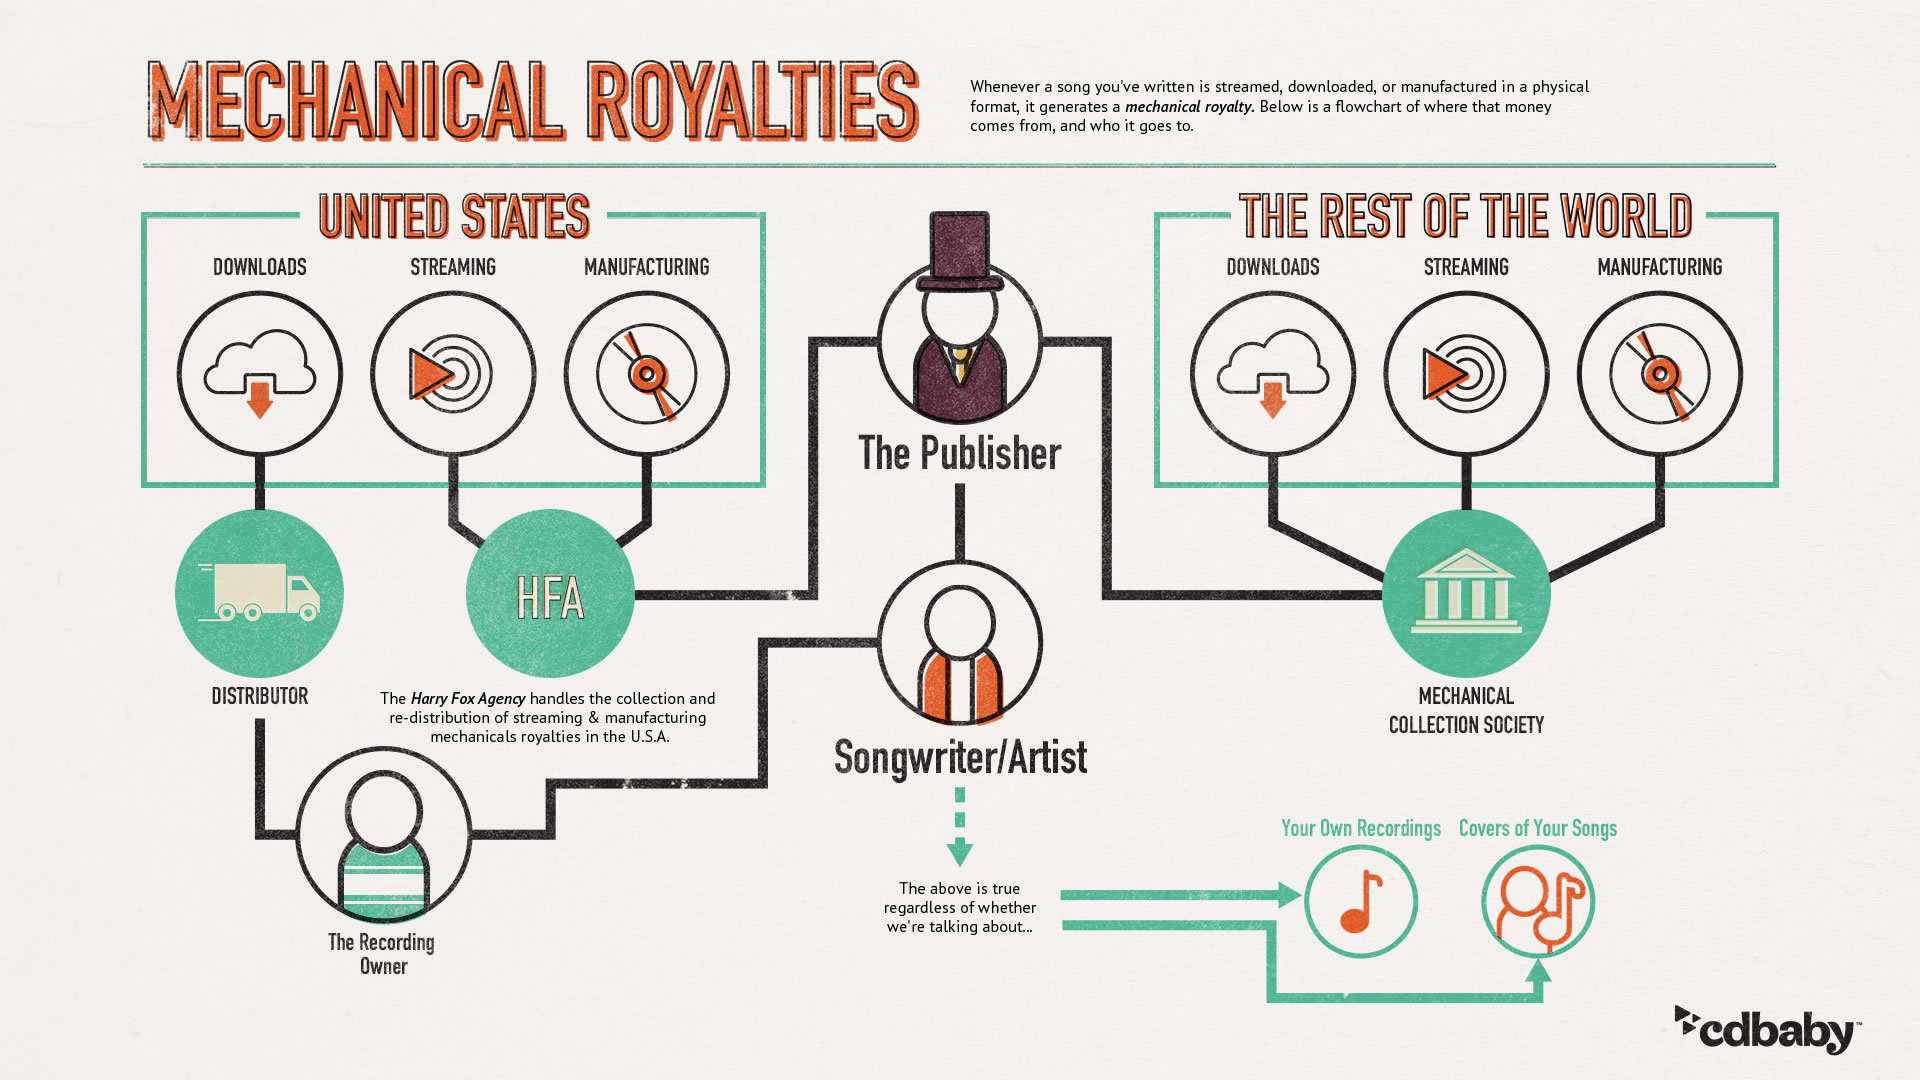 How mechanical royalties are paid to music publishers and songwriters